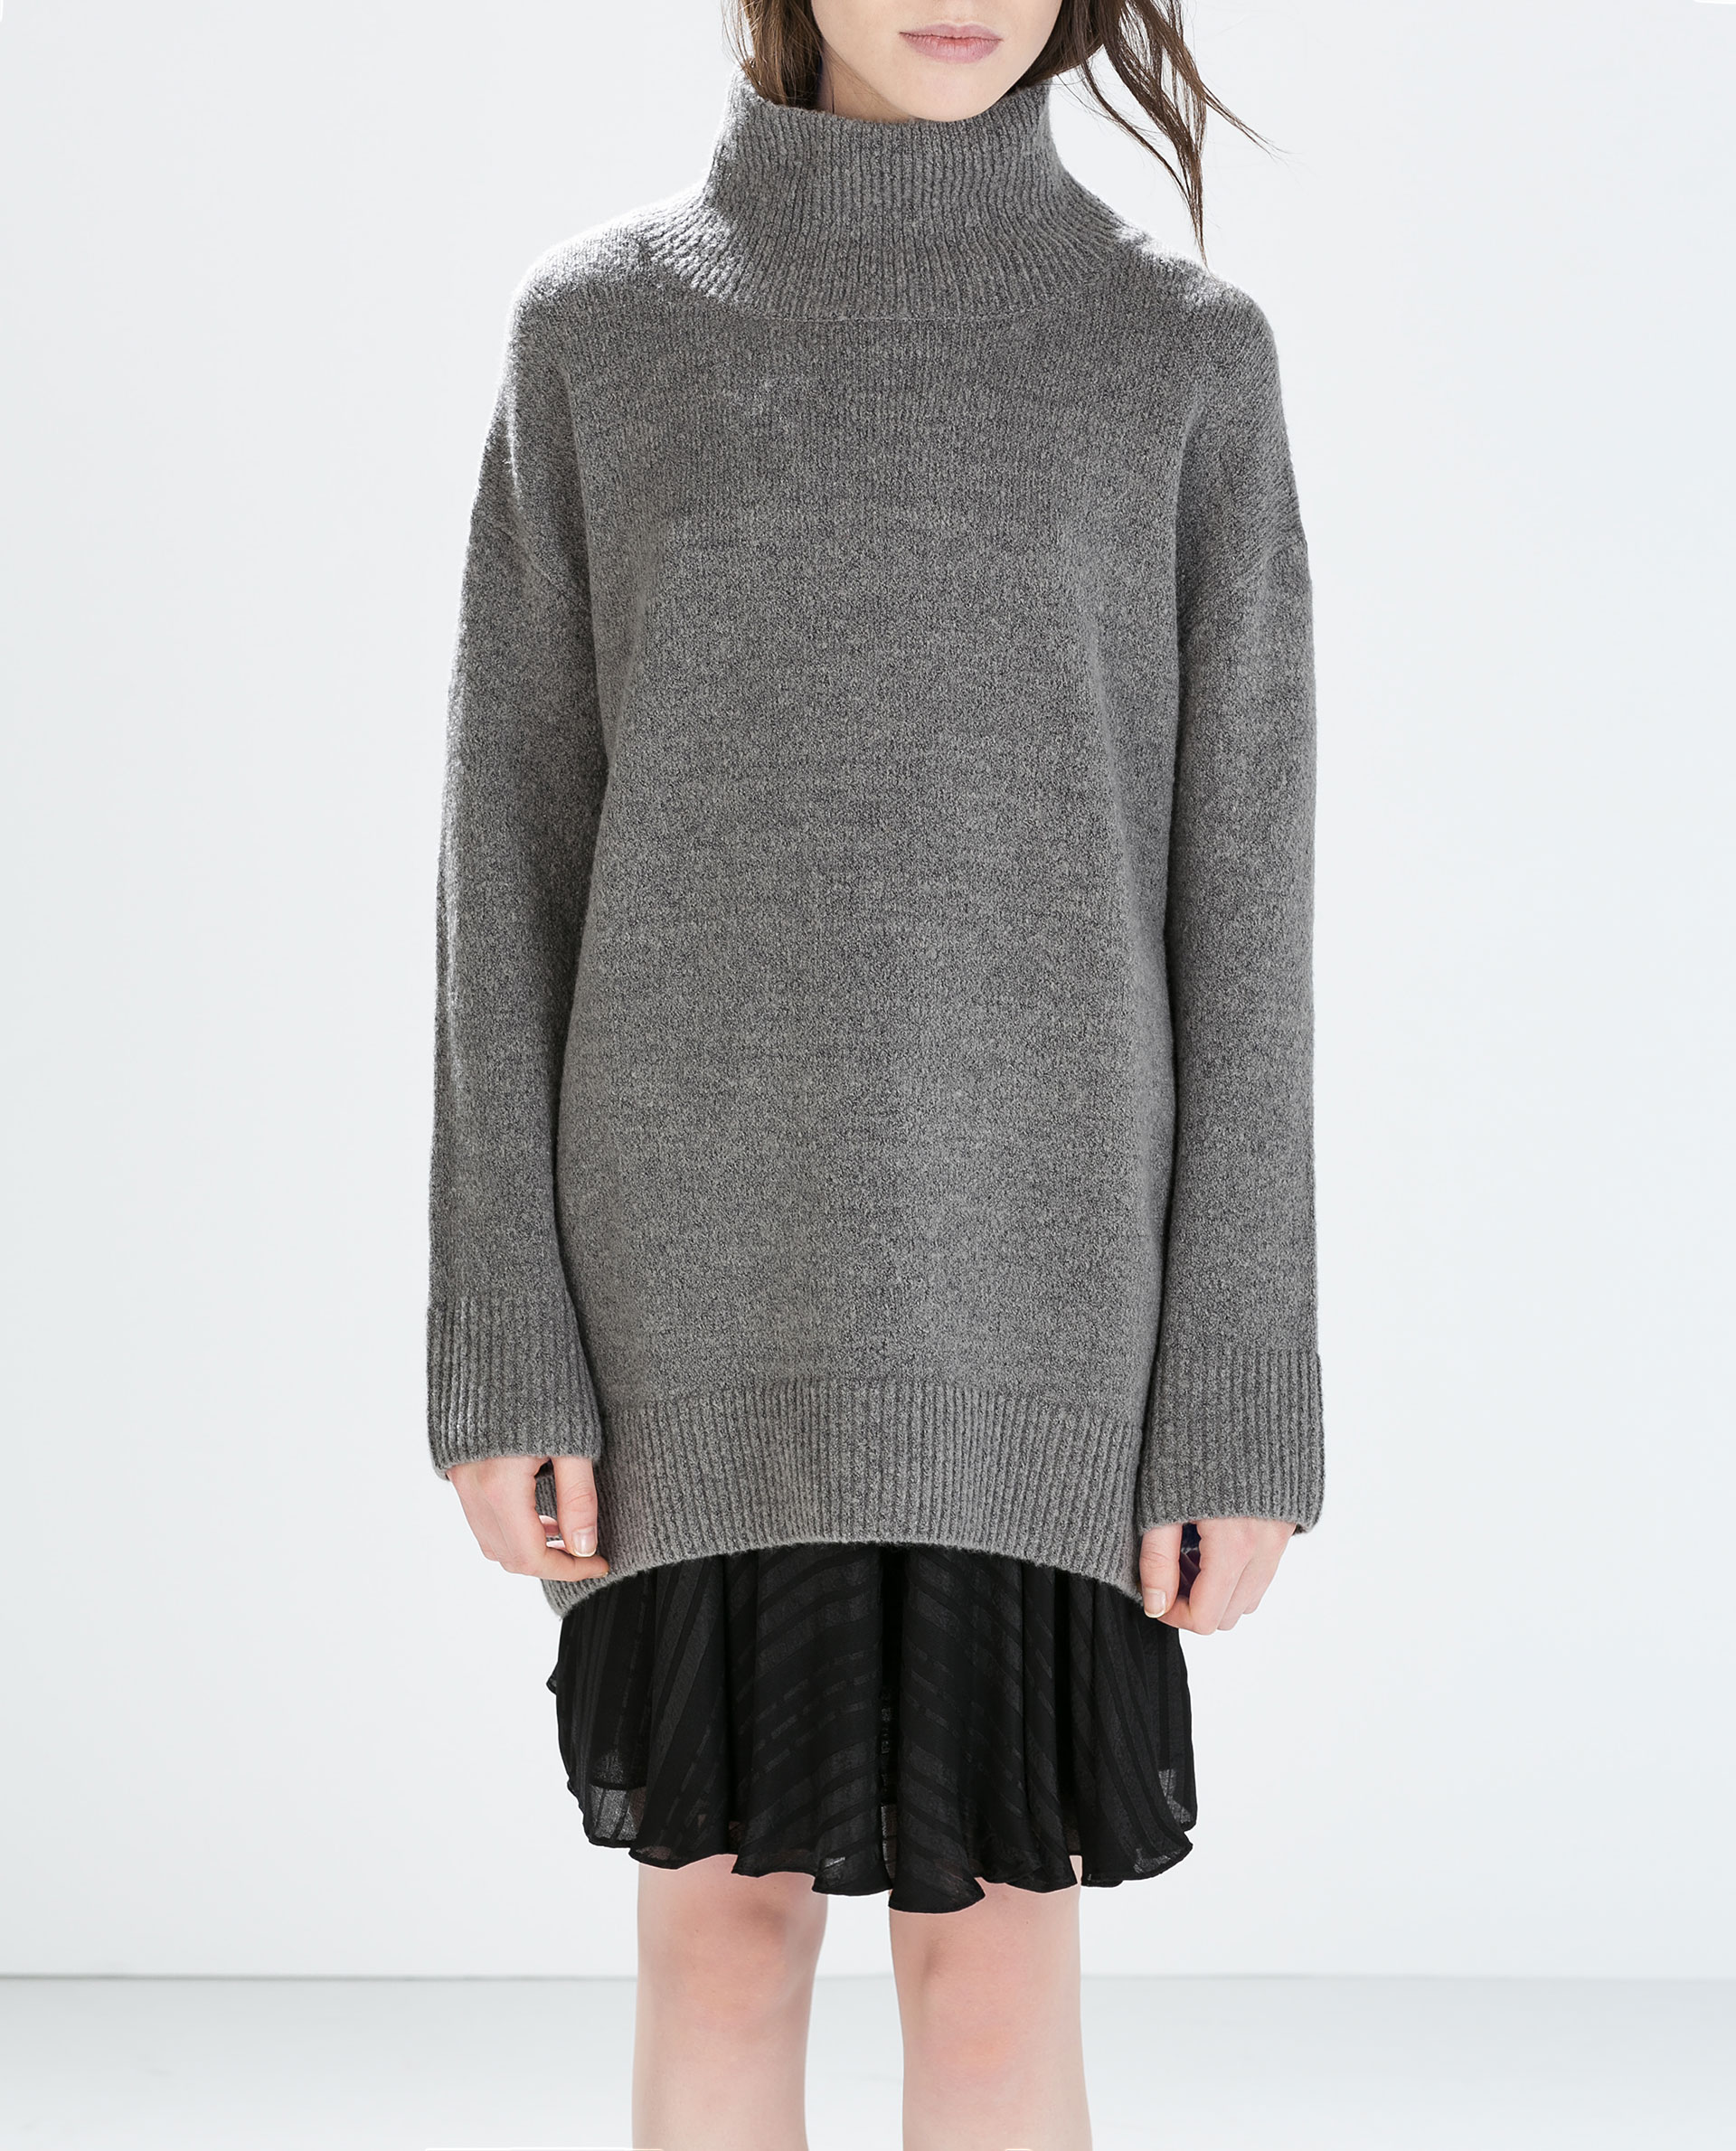 4b38d8c9 OVERSIZED POLO NECK SWEATER - Turtleneck - Knitwear - WOMAN | ZARA United  Kingdom